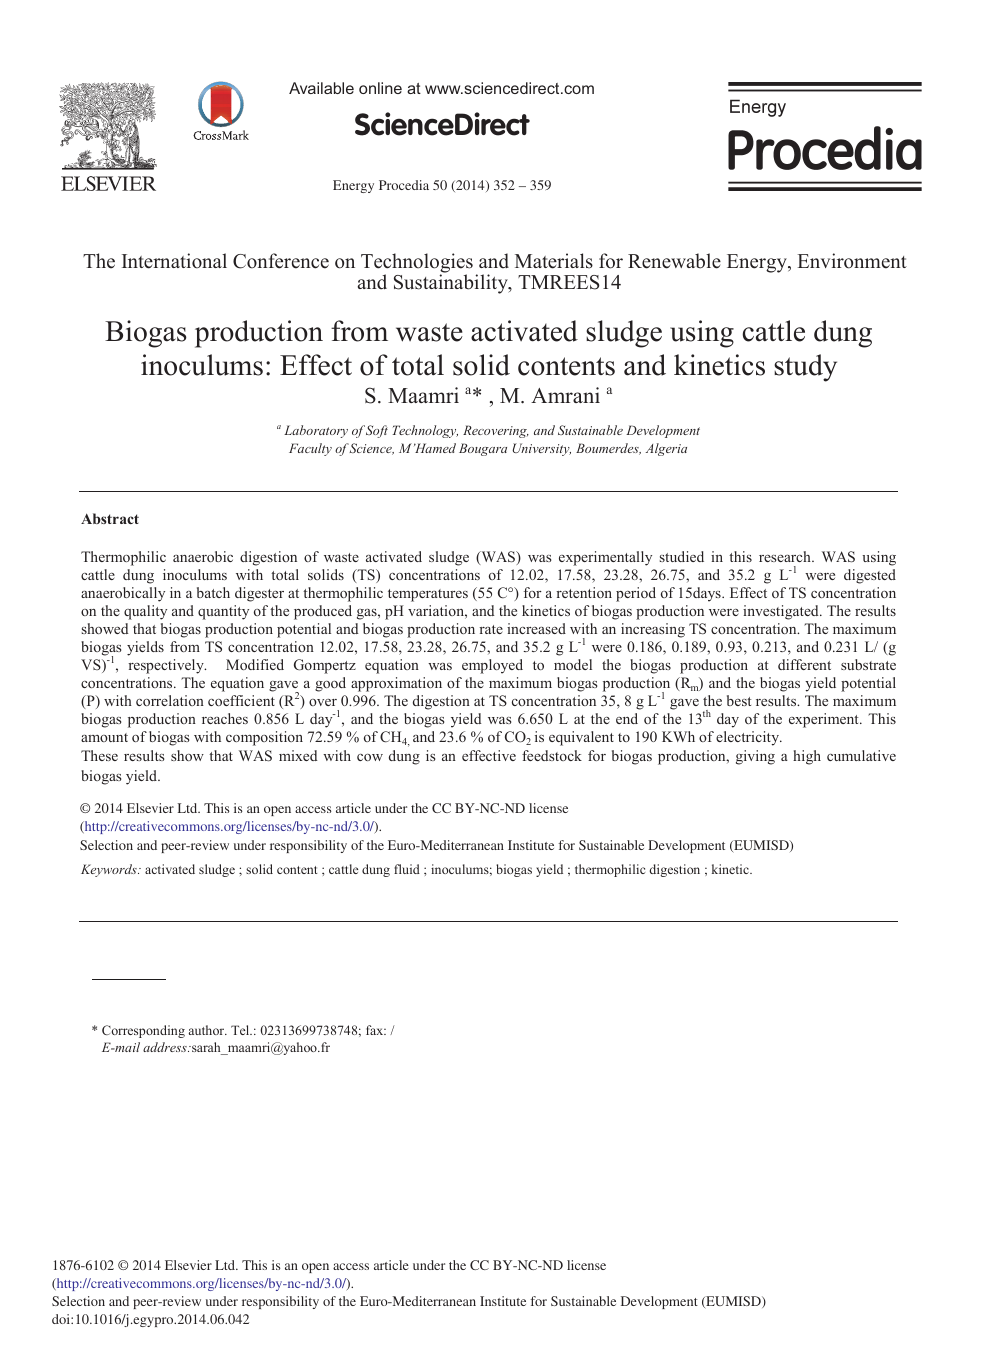 Biogas Production from Waste Activated Sludge Using Cattle